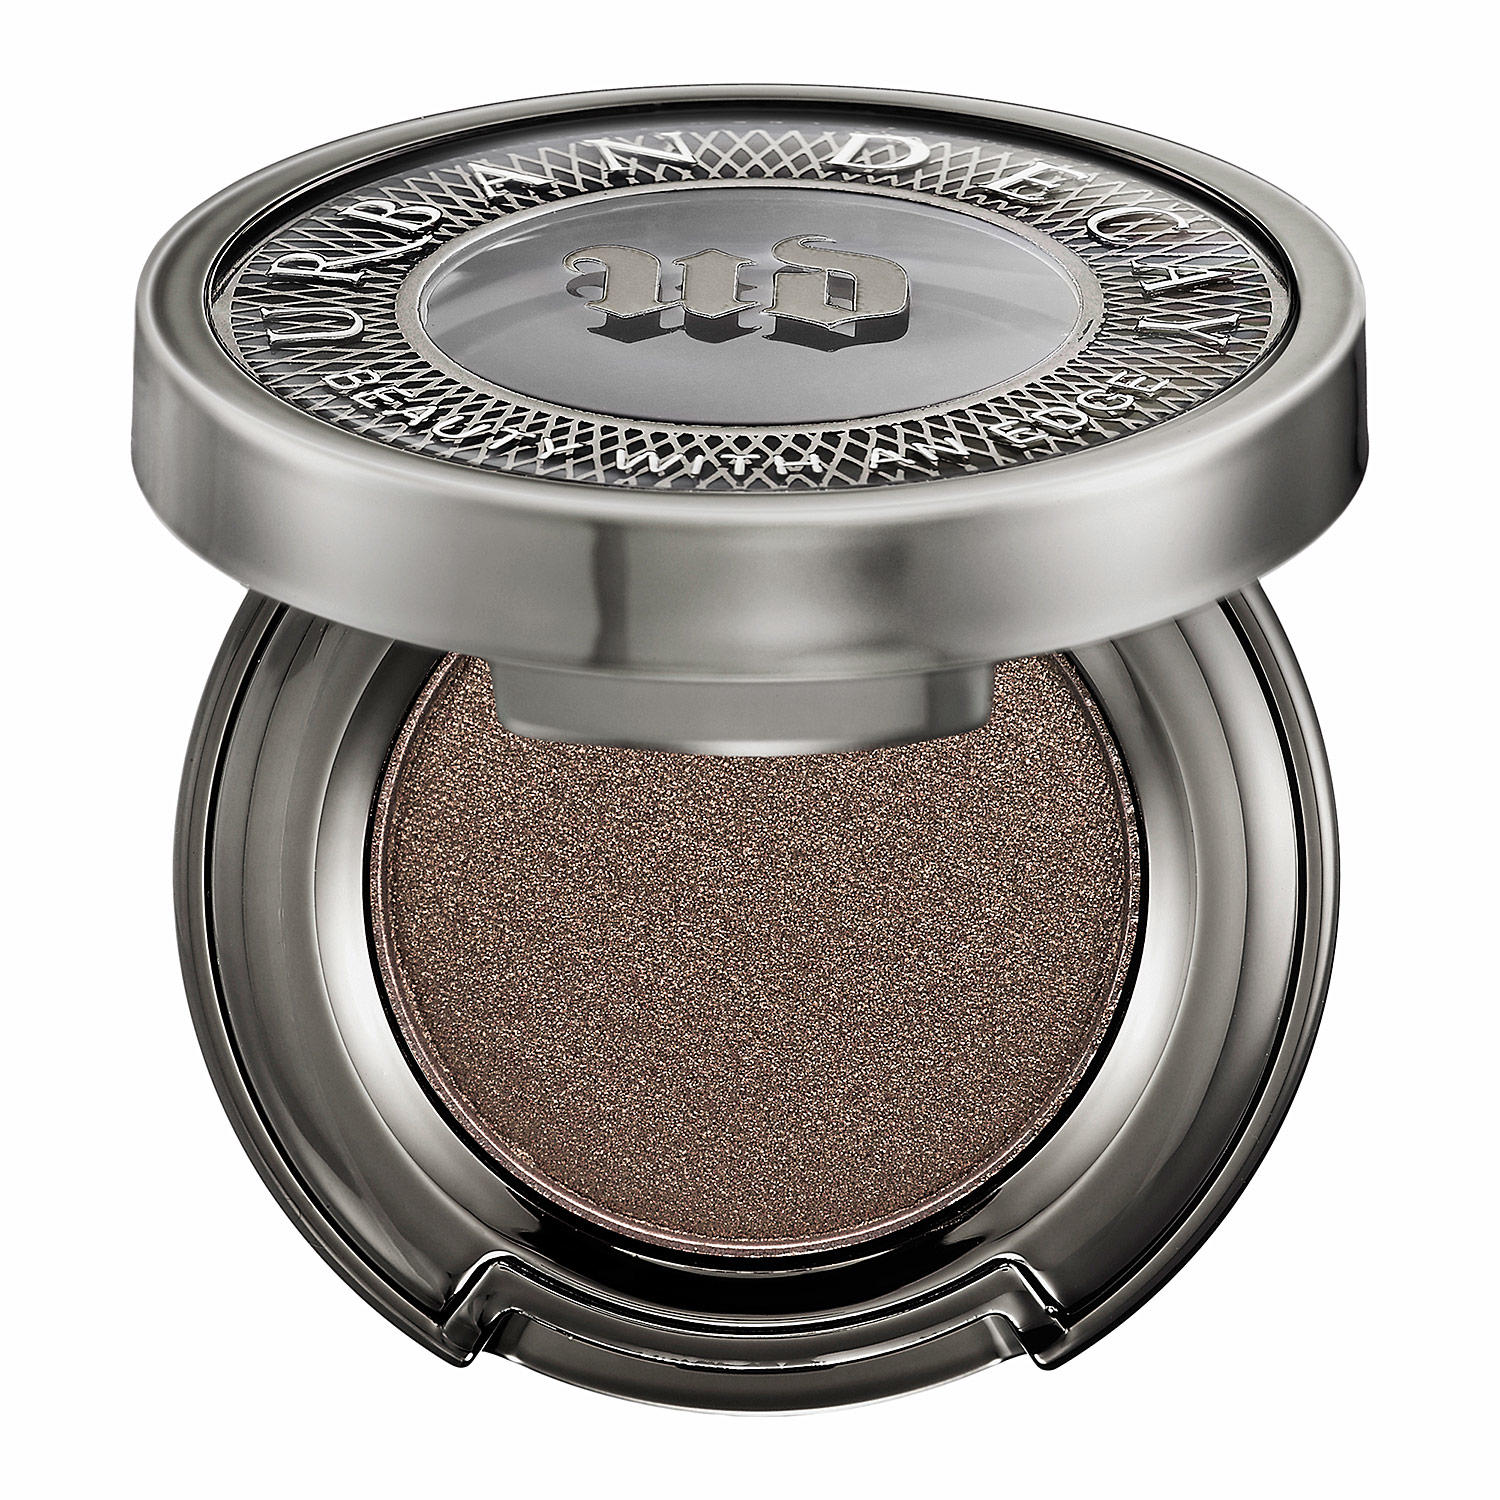 Urban Decay Eyeshadow Darkhorse